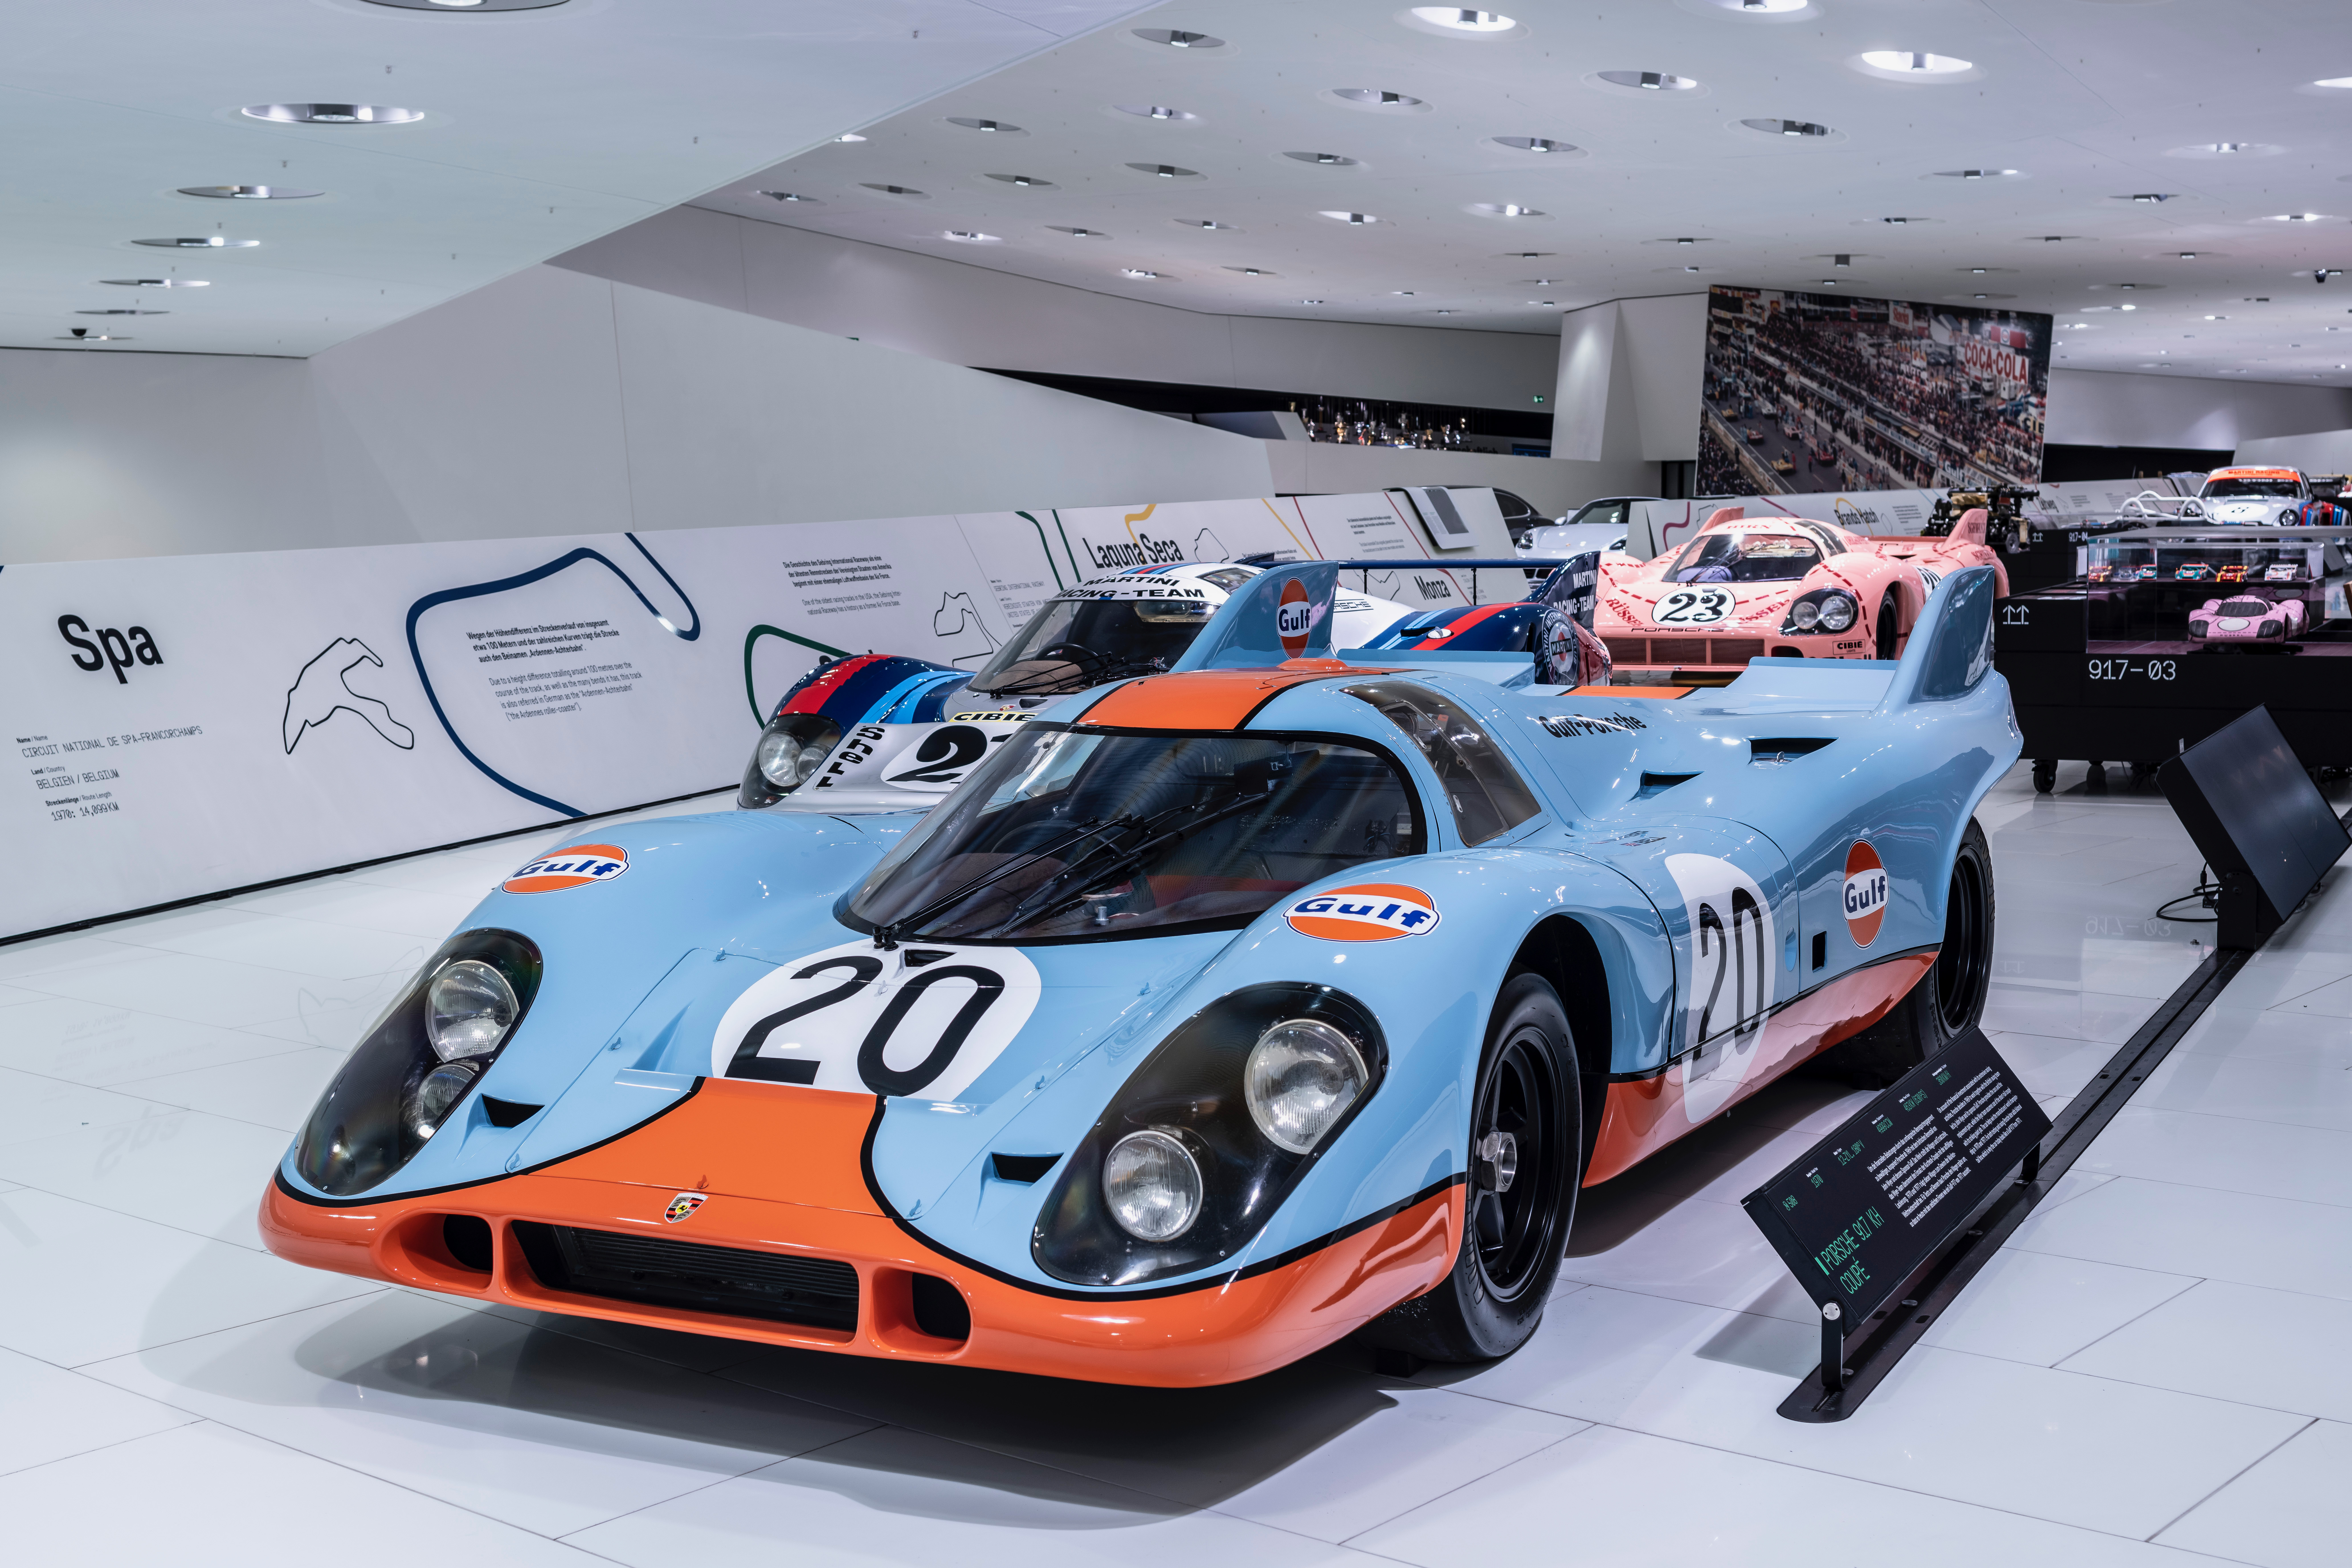 50 YEARS OF PORSCHE 917 The rebuilt 917-001 Langheck at